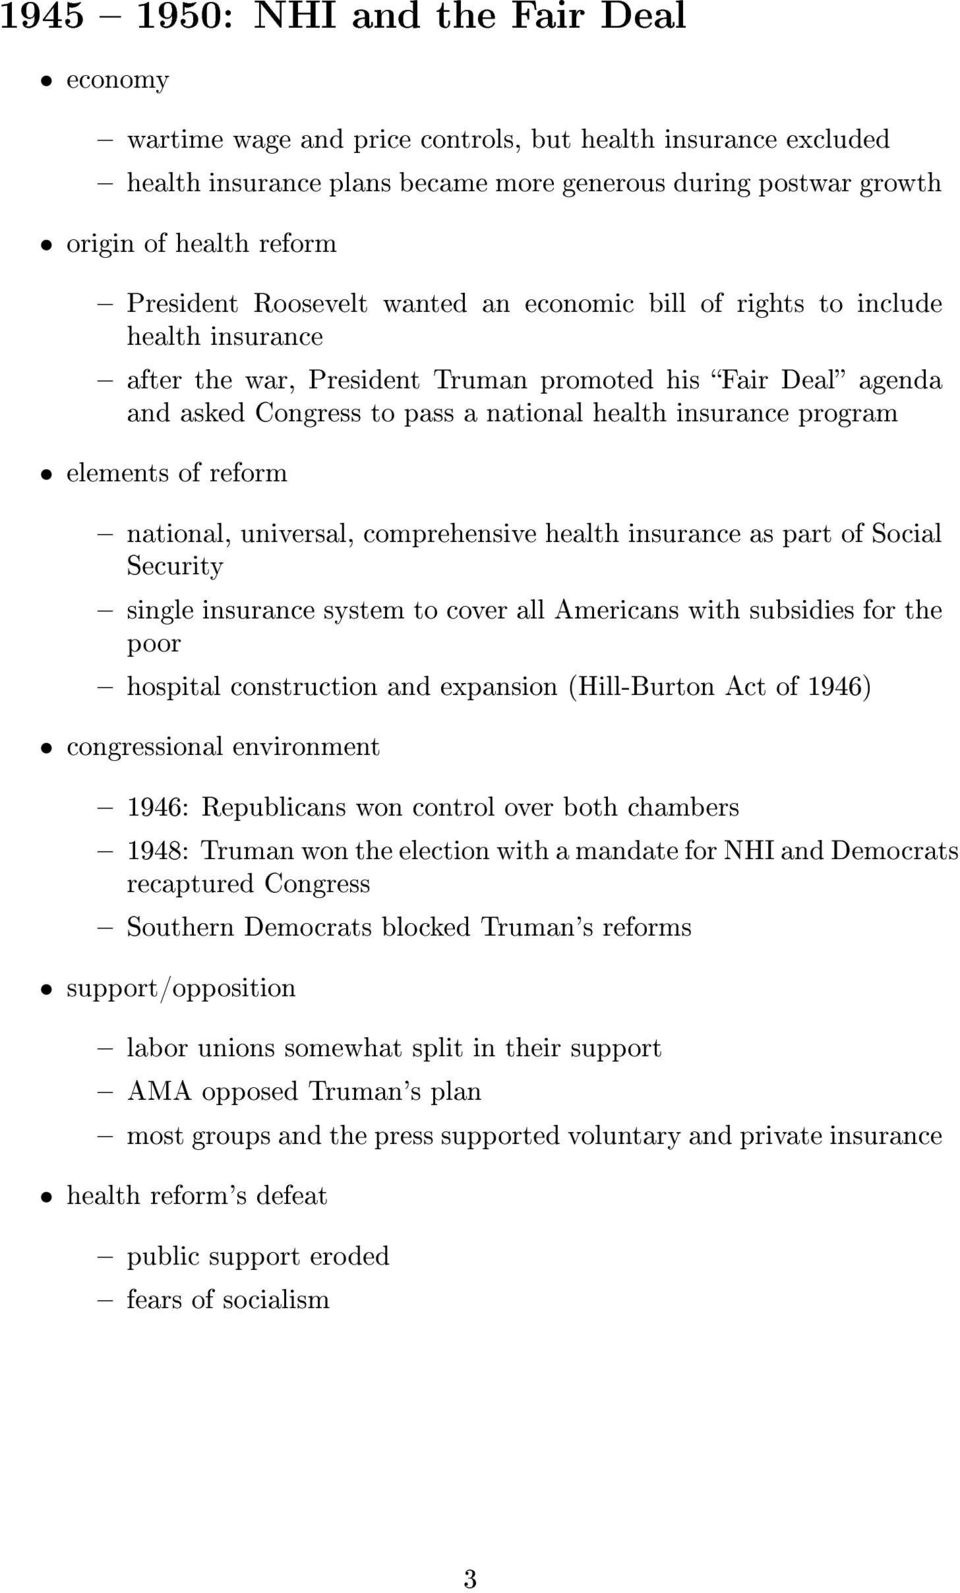 universal, comprehensive health insurance as part of Social Security single insurance system to cover all Americans with subsidies for the poor construction and expansion (Hill-Burton Act of 1946)